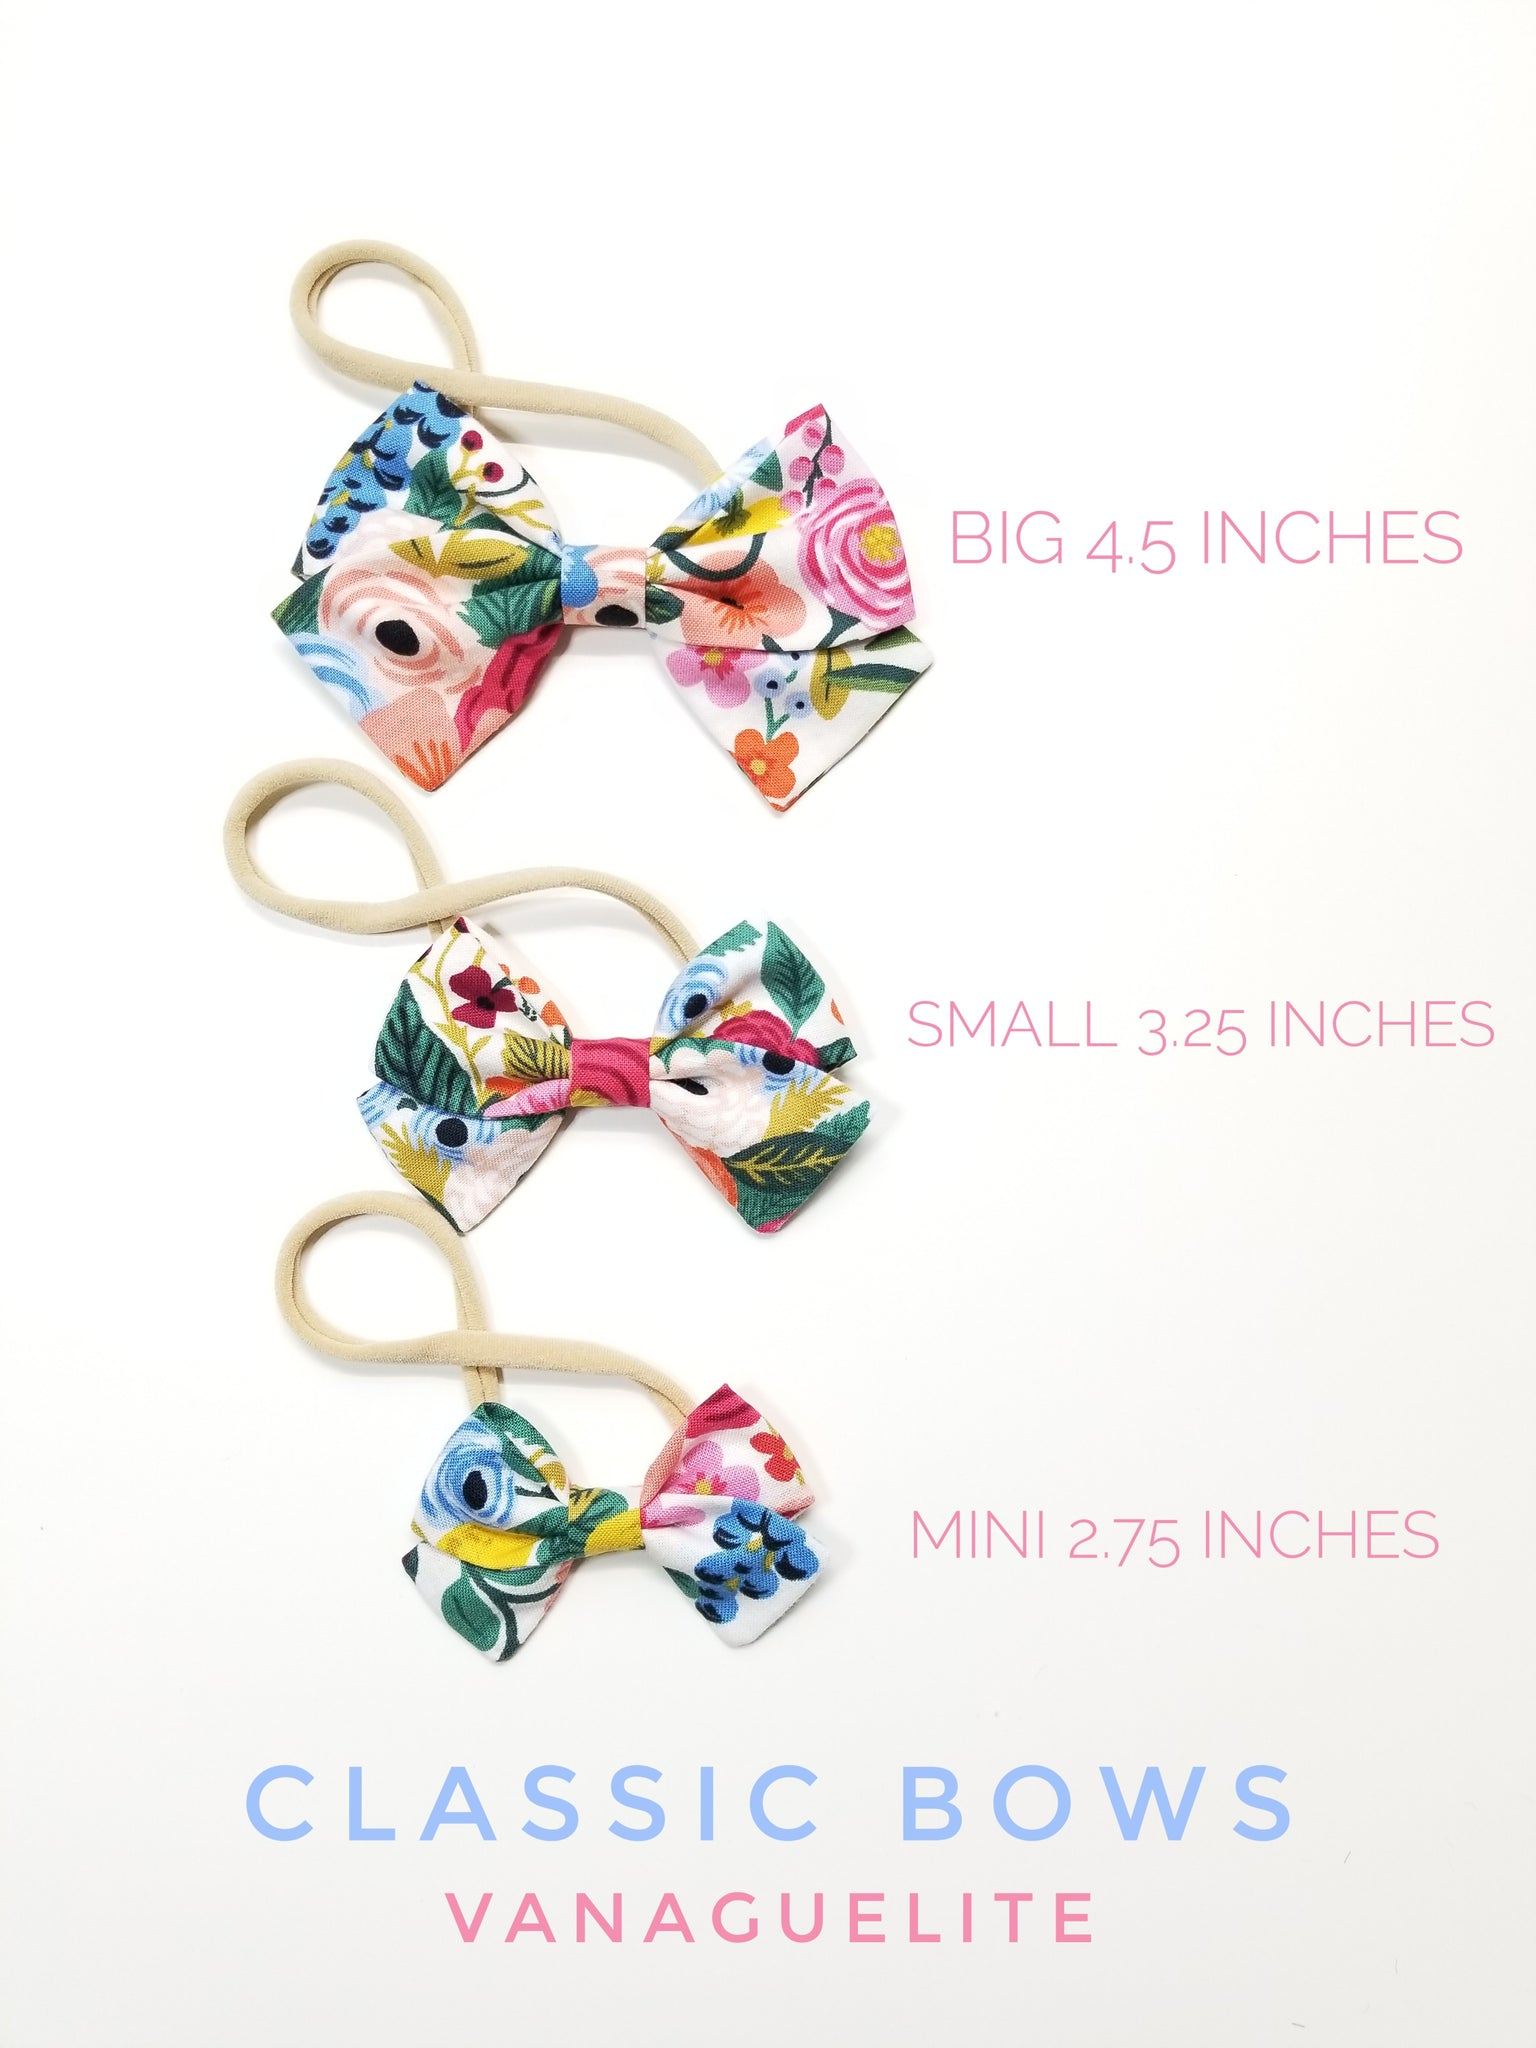 Baby Bows Vanaguelite, Nylon Headbands or Hair Clips, Ivory base, Newborn to Big Girls